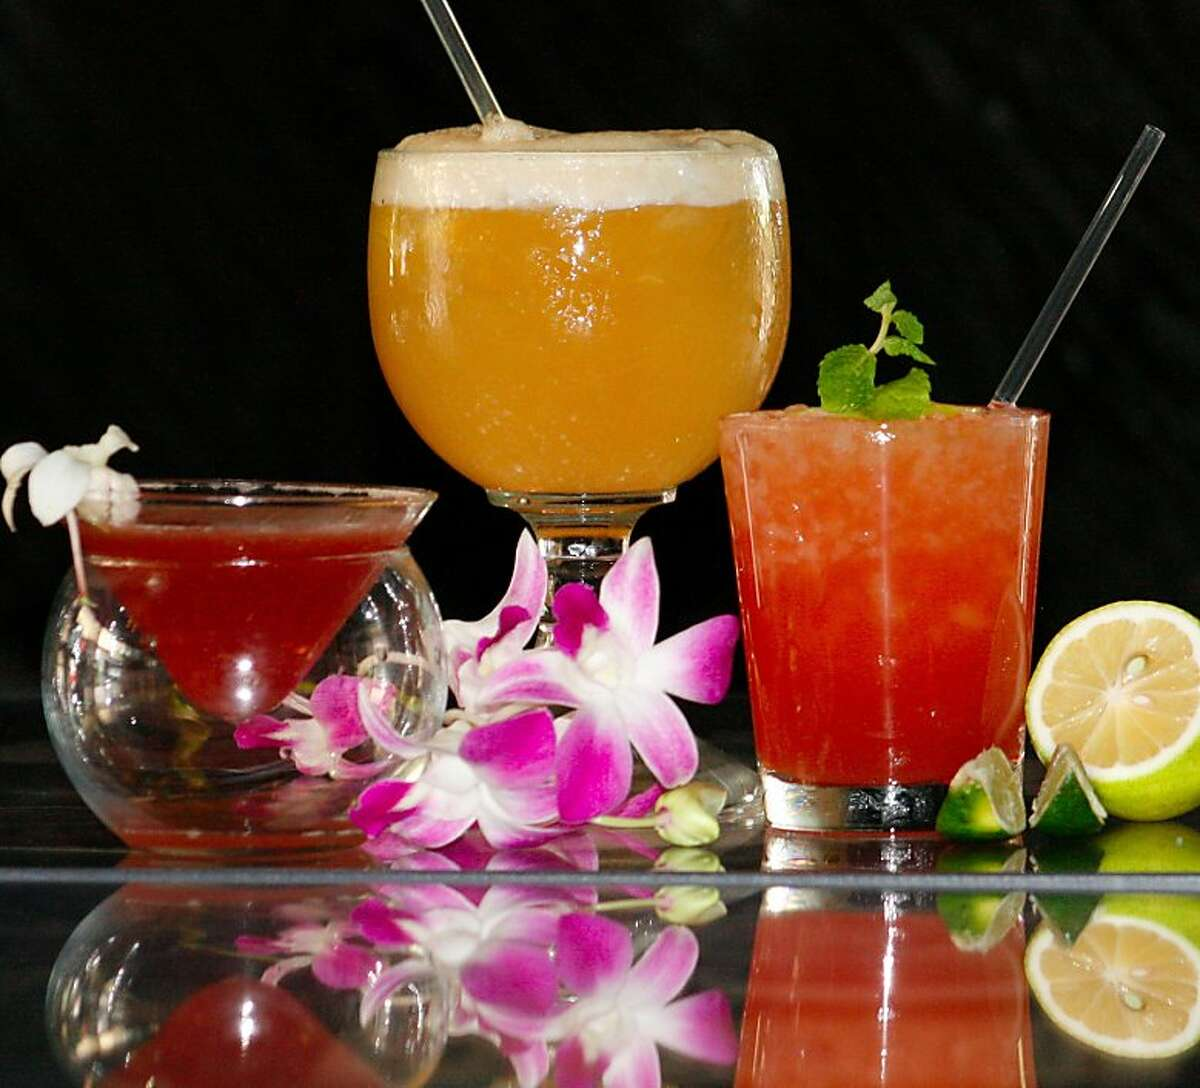 The cocktails at Okolemaluna Tiki Lounge in Kailua-Kona, which feature local ingredients such as fruit syrups and Hawaii-produced rum, are also served in an eco-friendly bar.